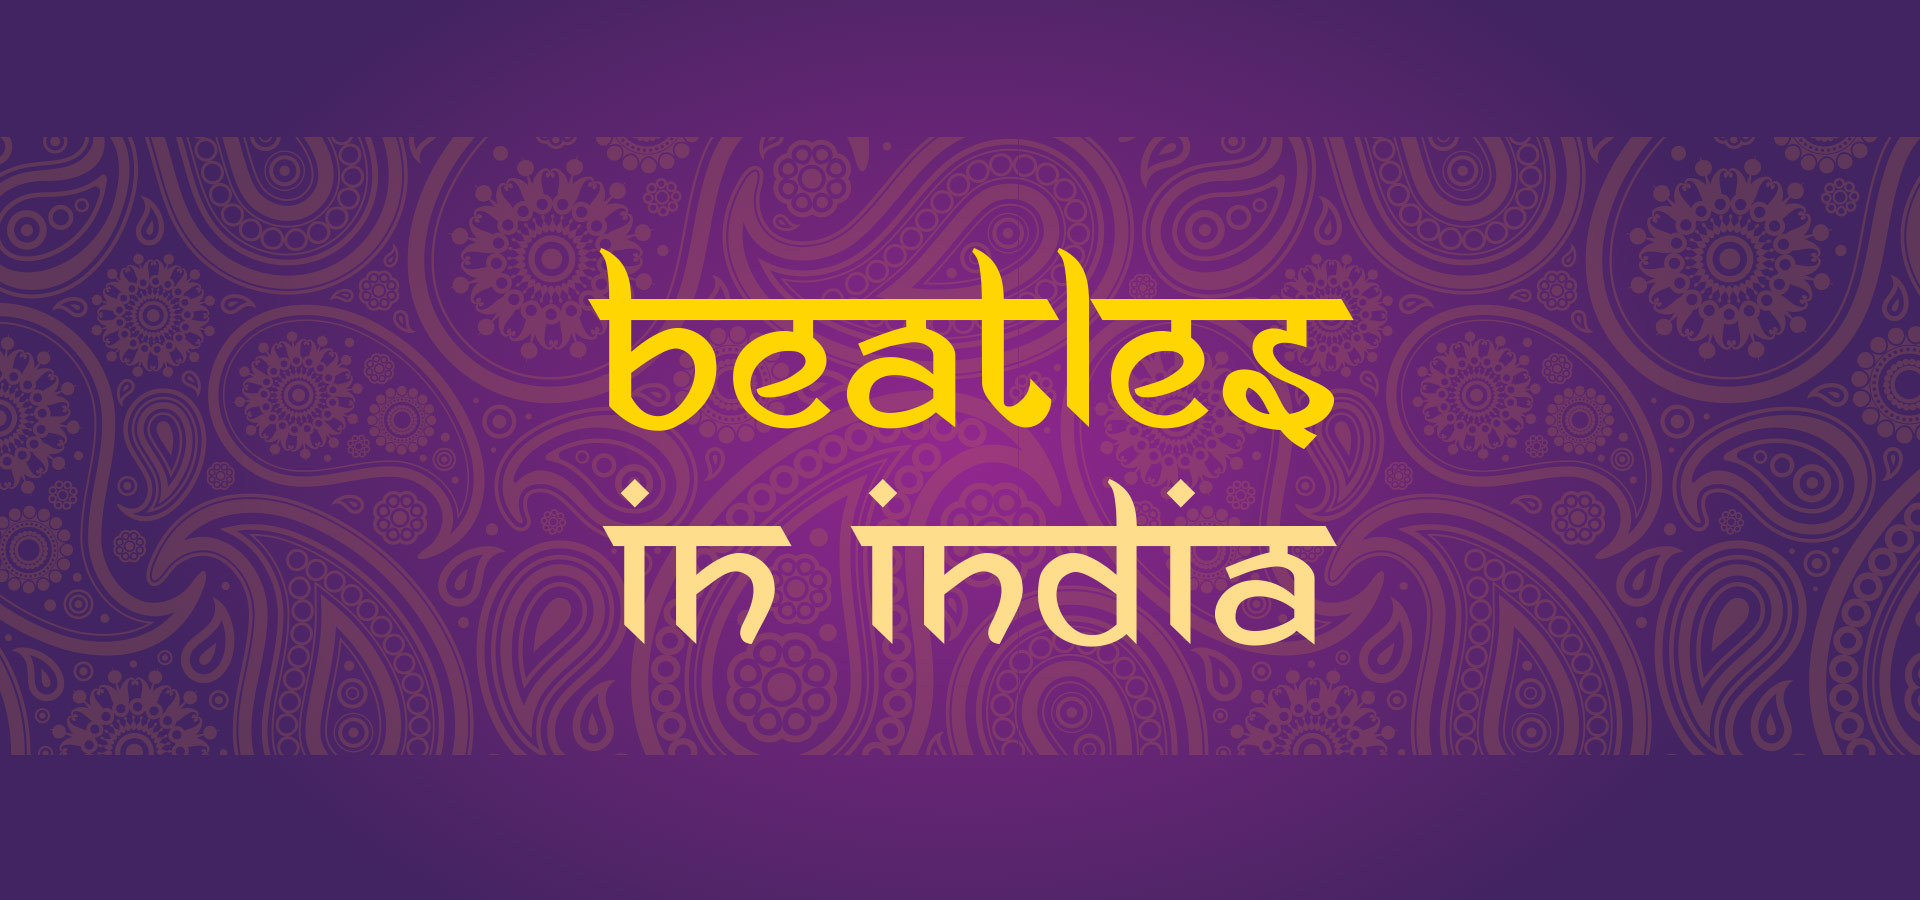 Beatles in India: new exhibition coming soon